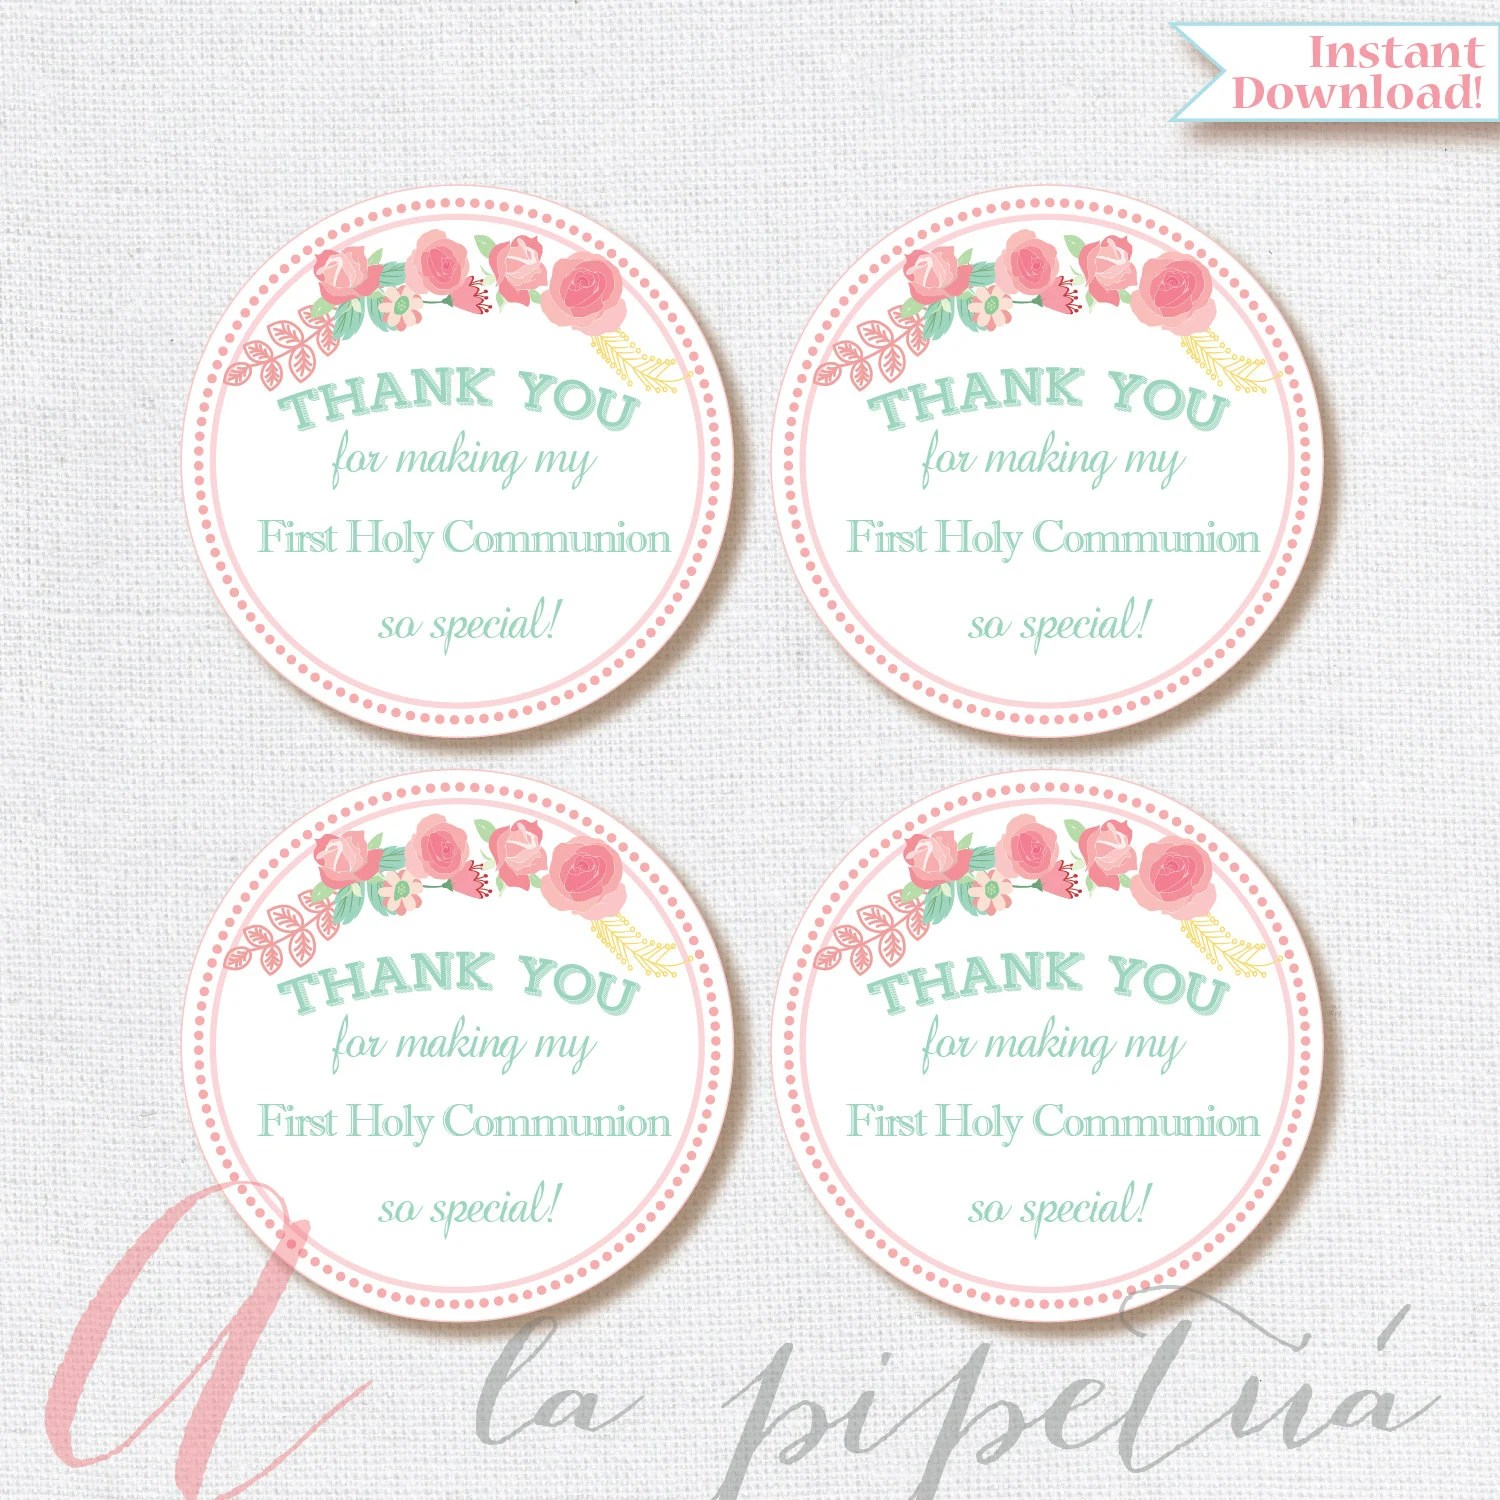 Thank You Favor Tags First Communion Tags Printable Diy Thank You Tags First Holy Communion